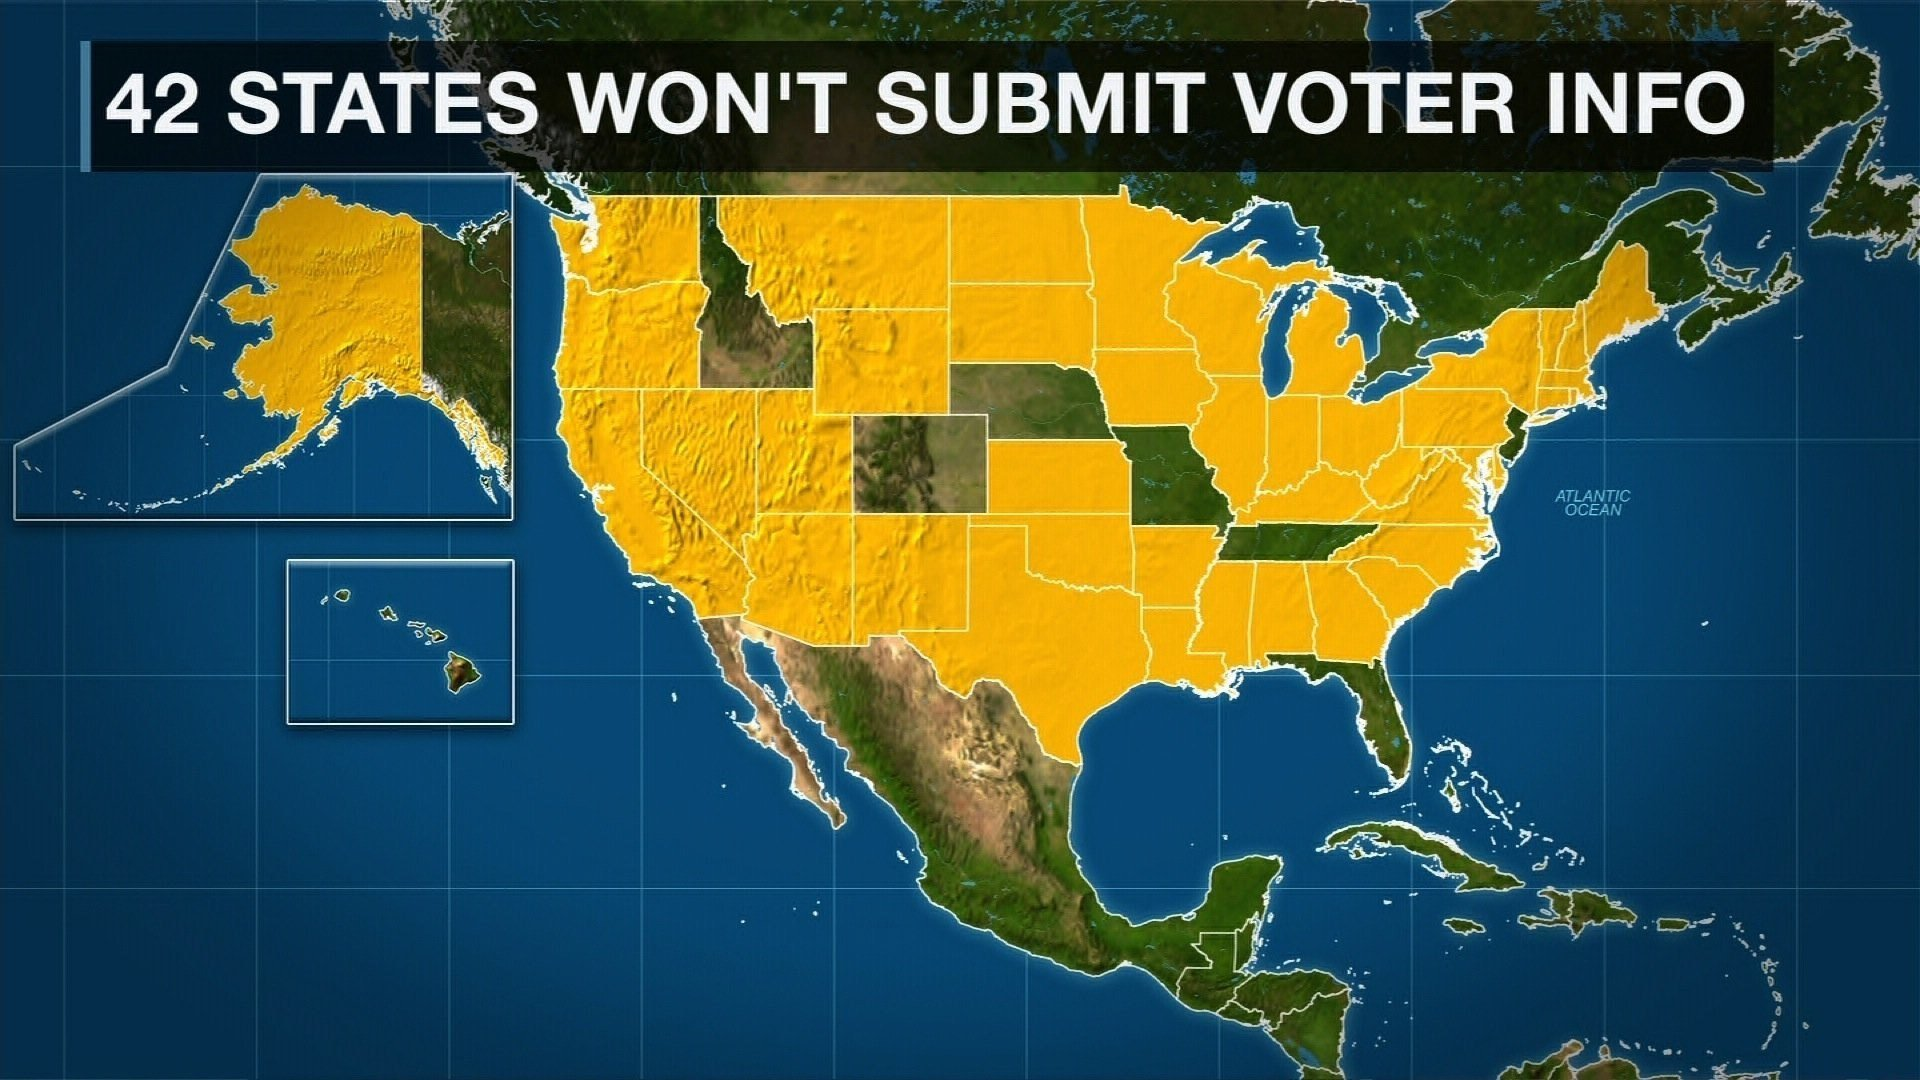 Forty-one states have defied the Trump administration's request for private voter information, according to a CNN inquiry to all 50 states.